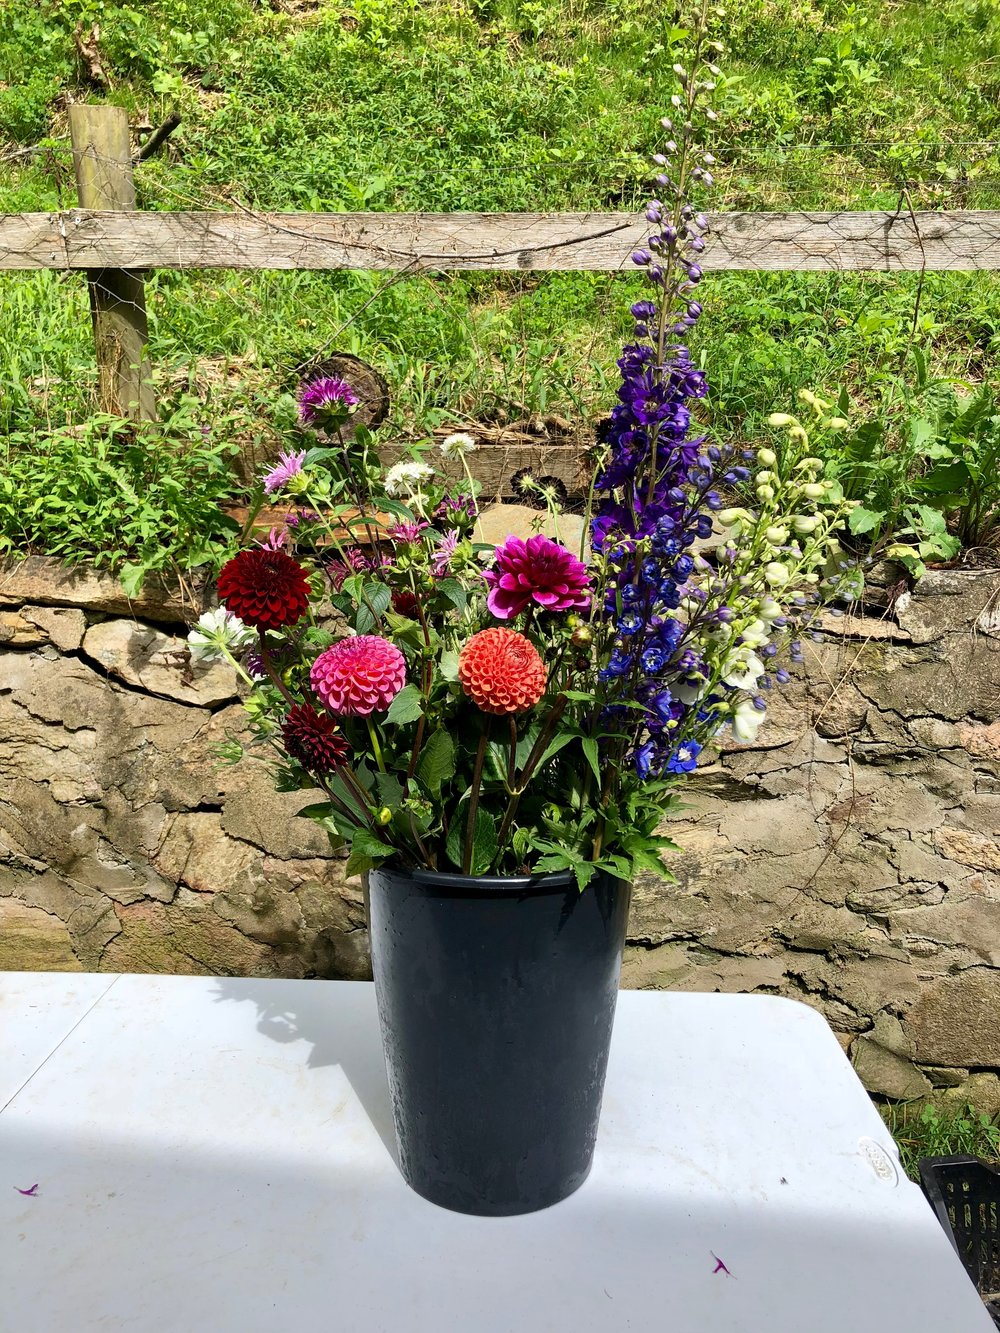 Bulk buckets of flowers